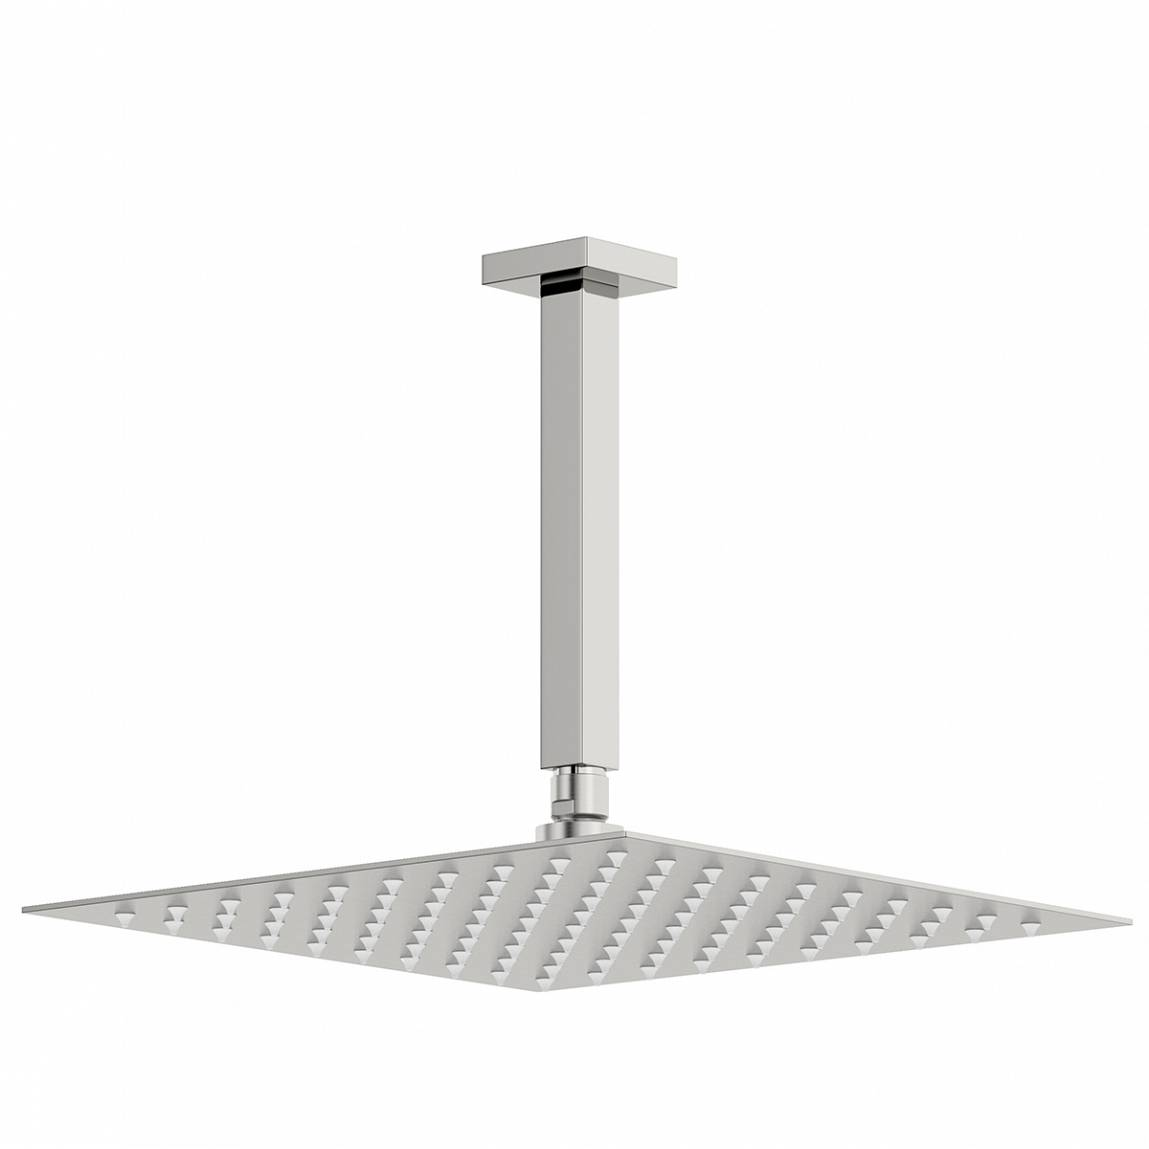 Image of Incus 300mm Shower Head & Square Ceiling Arm